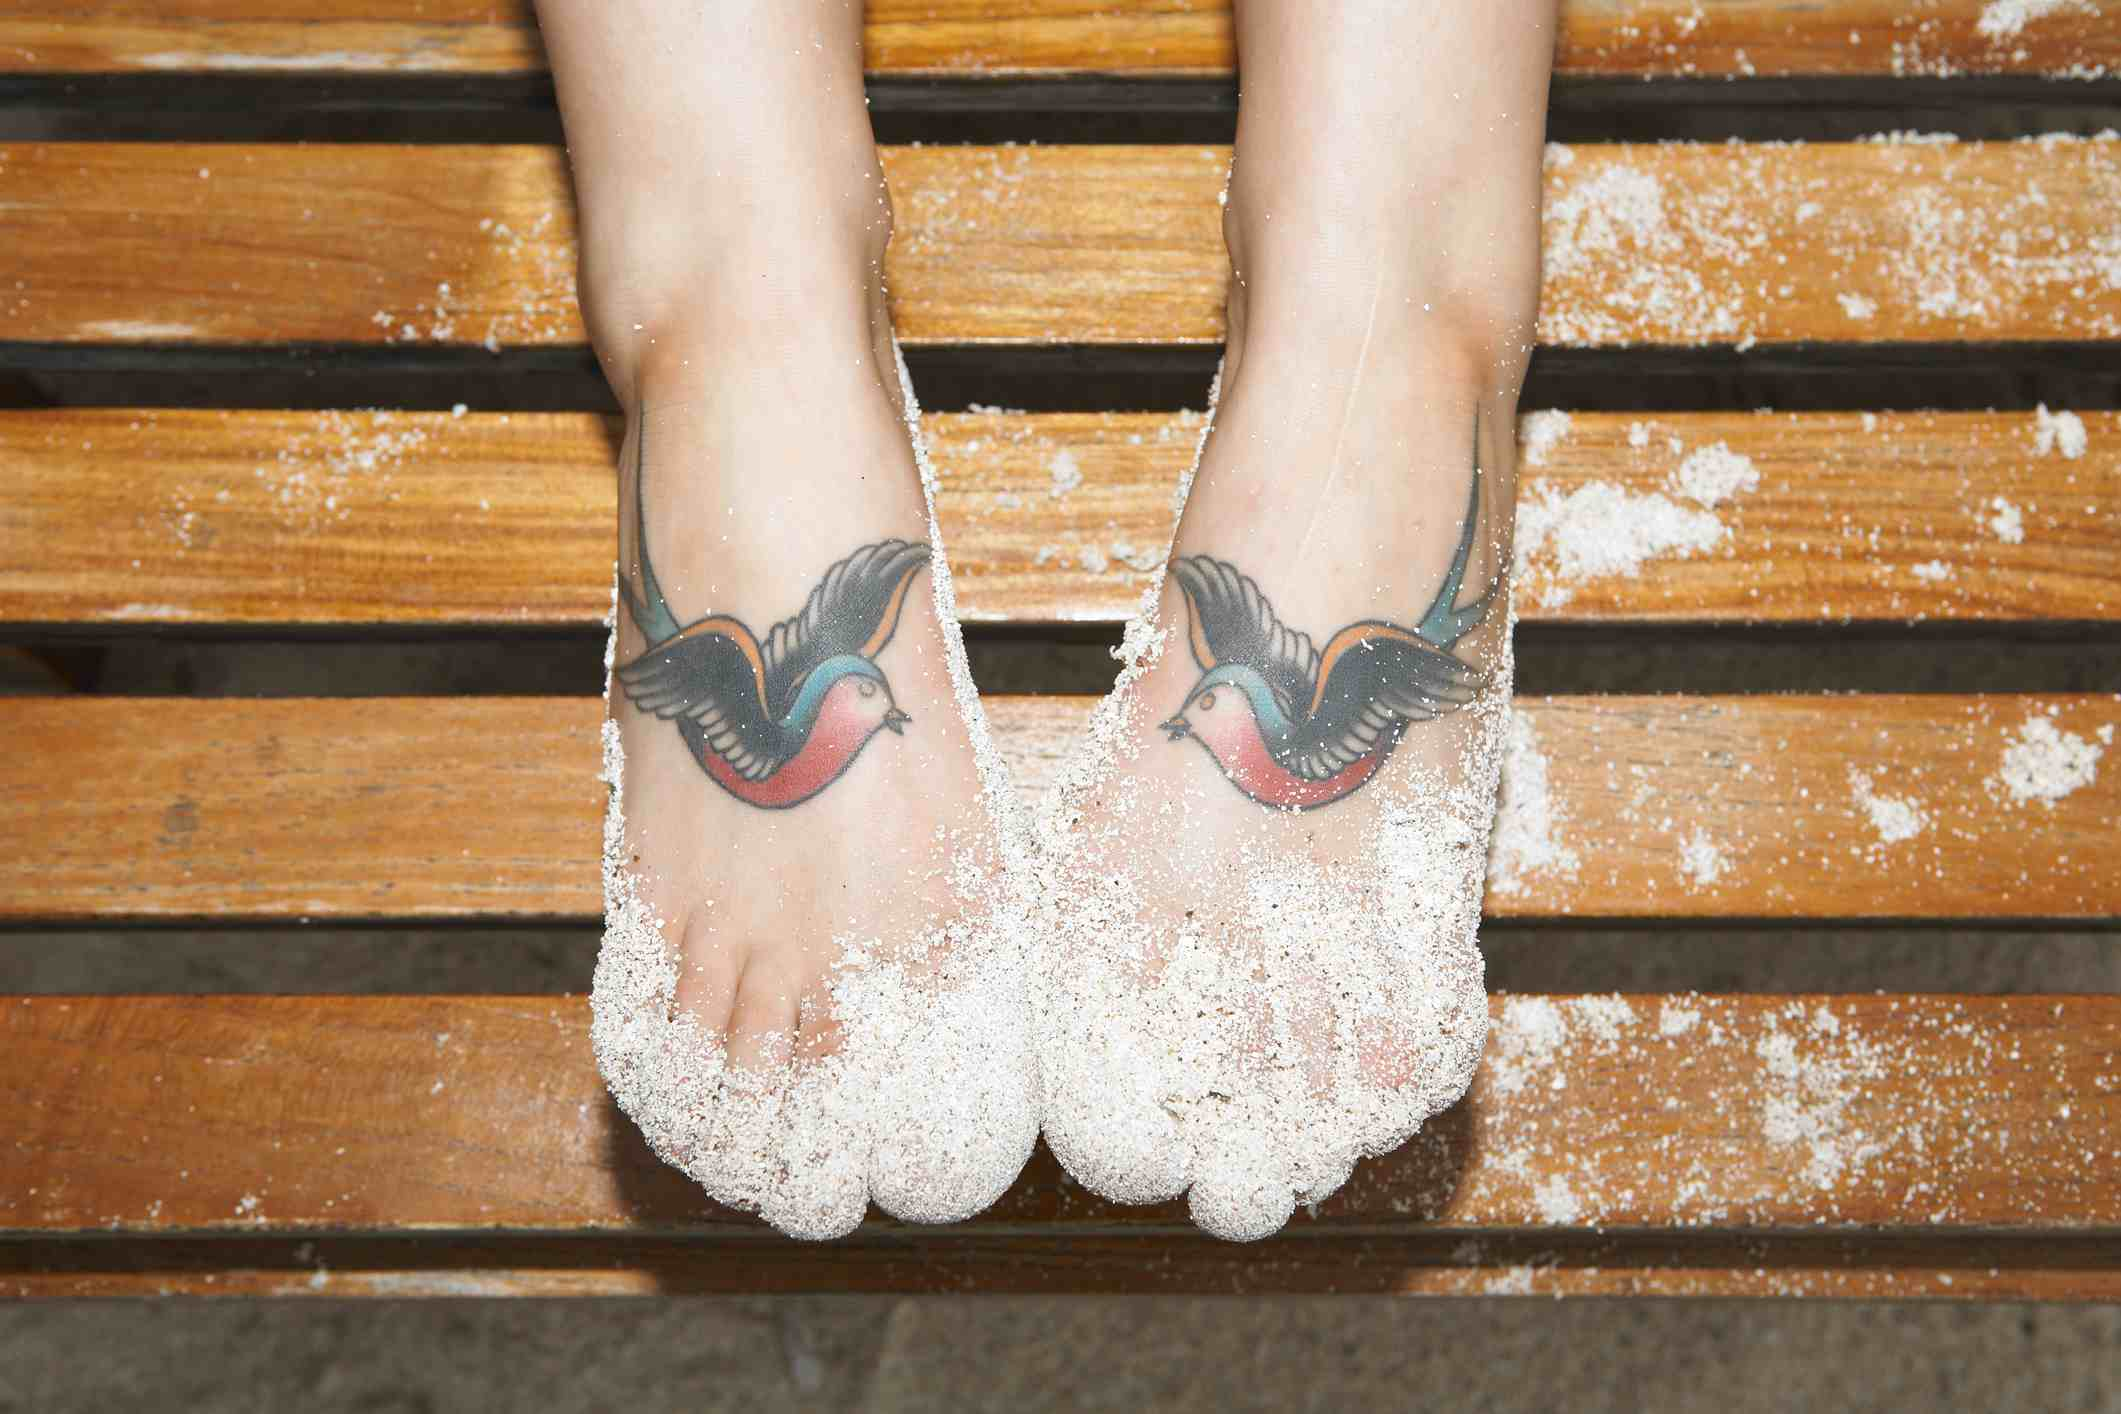 Foot Tattoo Aftercare Tips (Top 10)